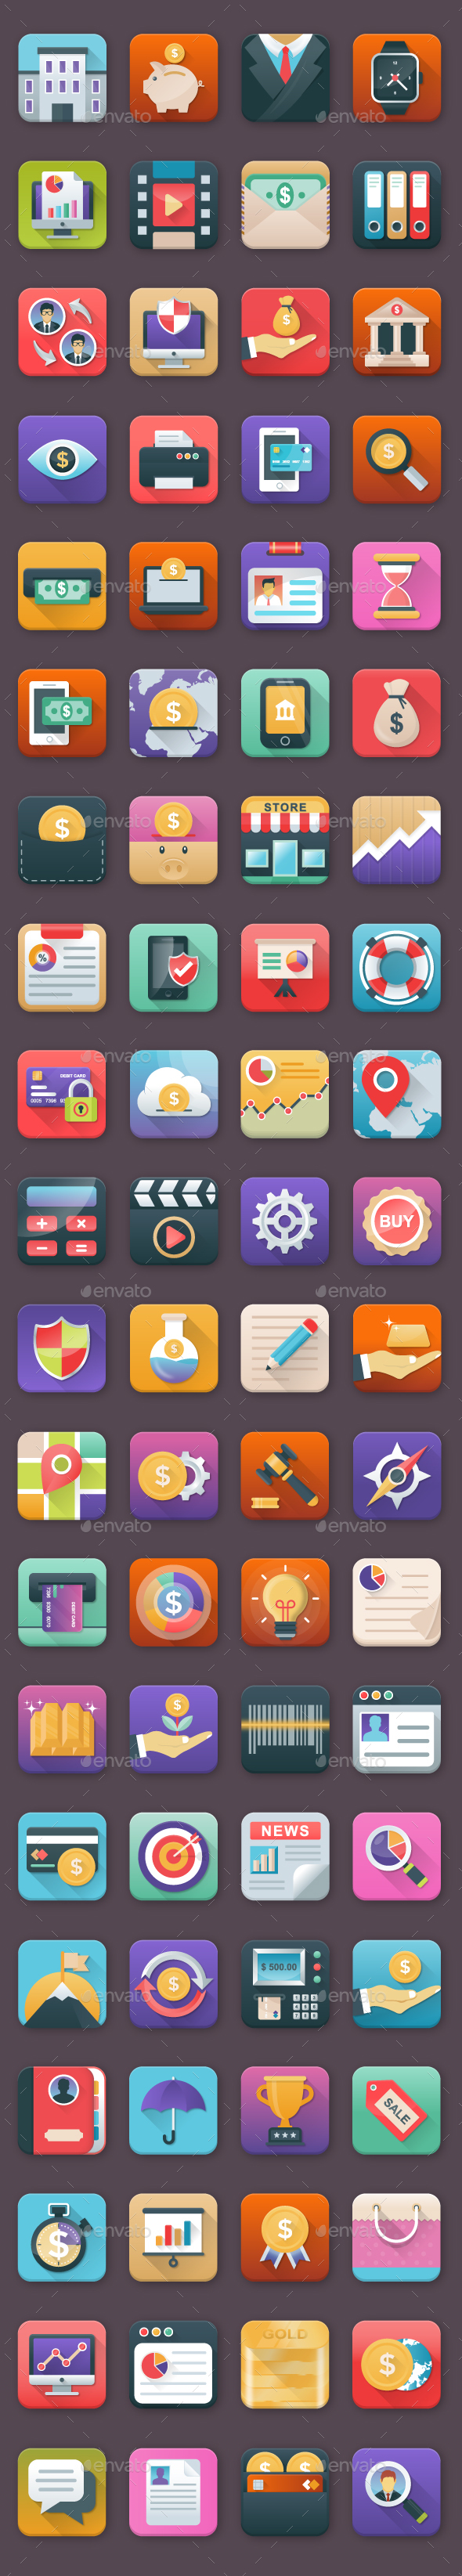 80 Finance App Icons - Icons